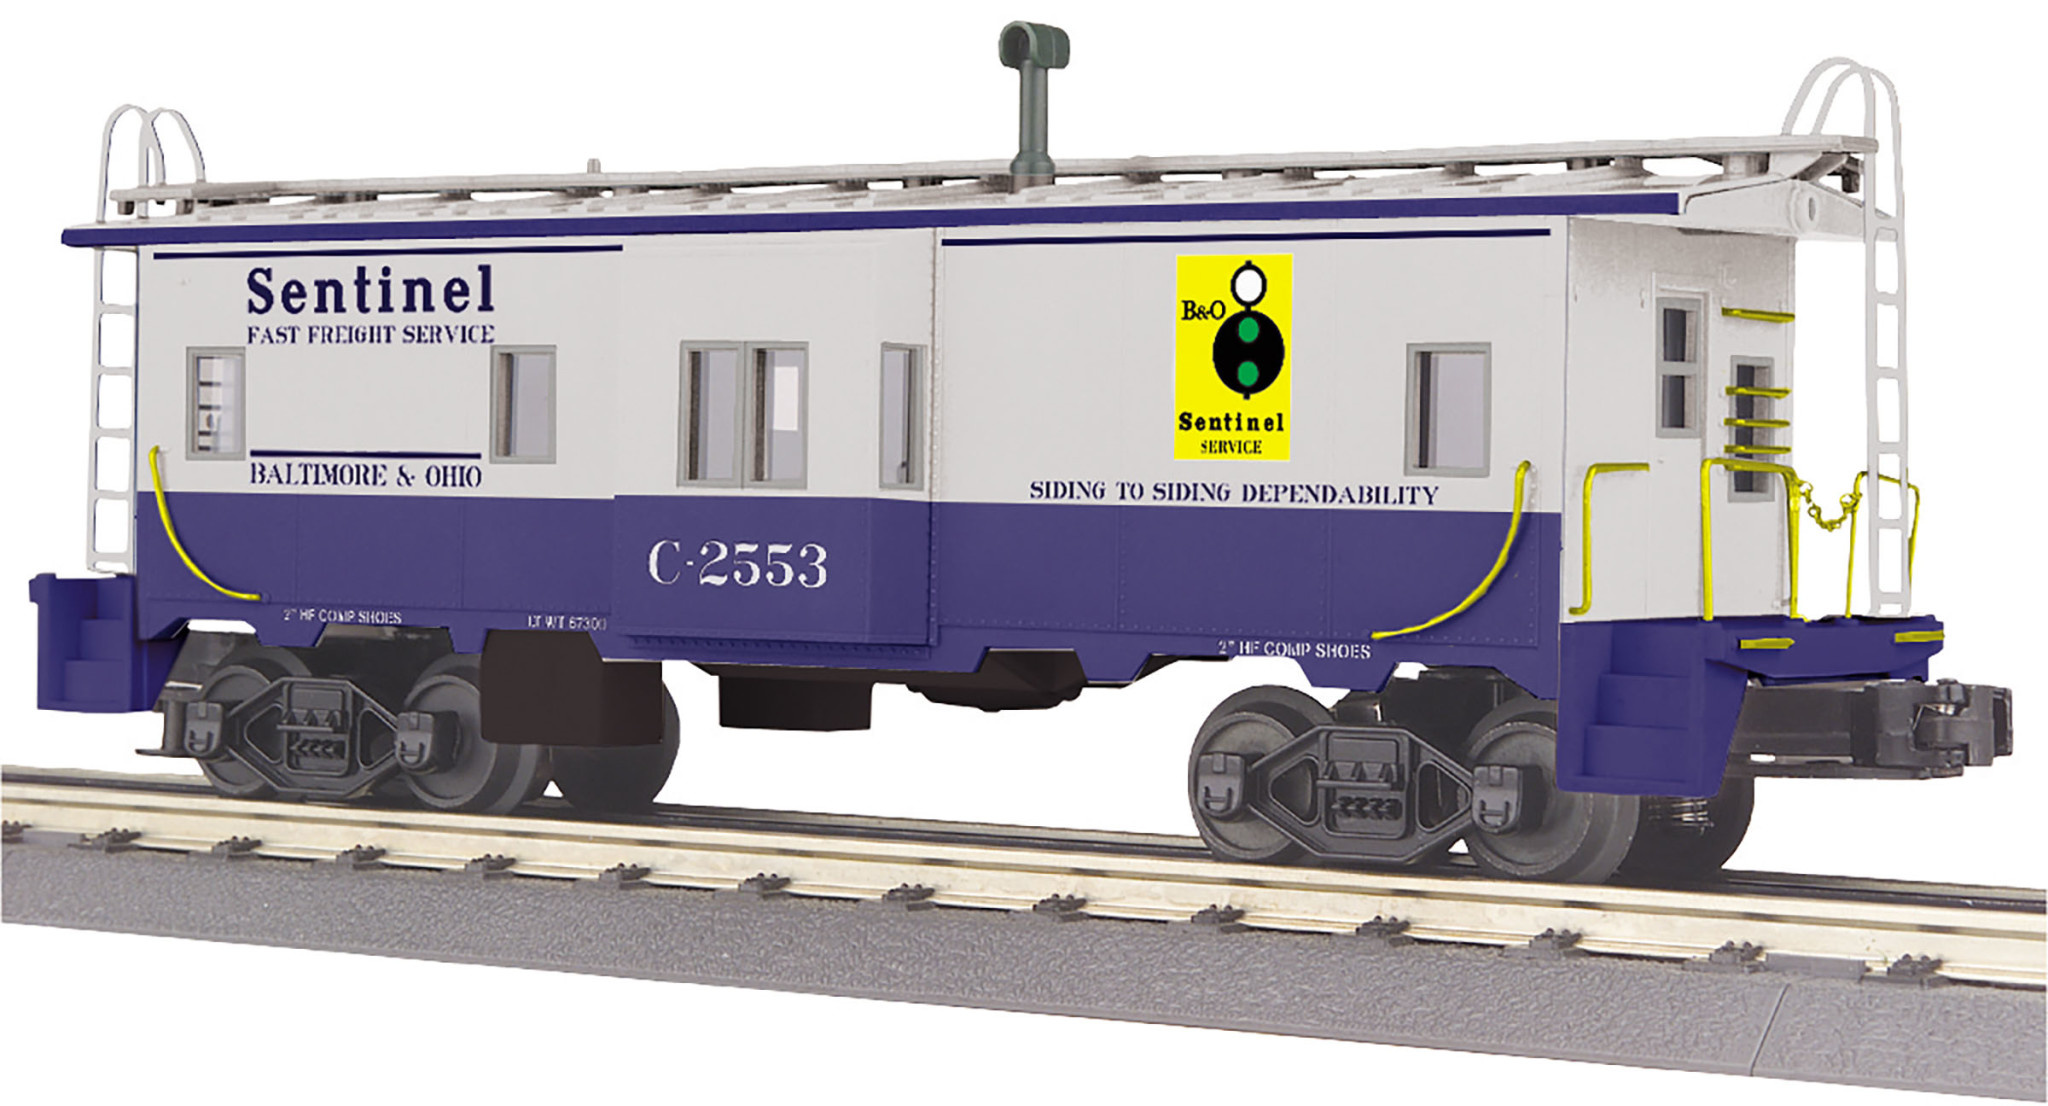 MTH - RailKing #30-77340, Baltimore & Ohio Bay Window Caboose